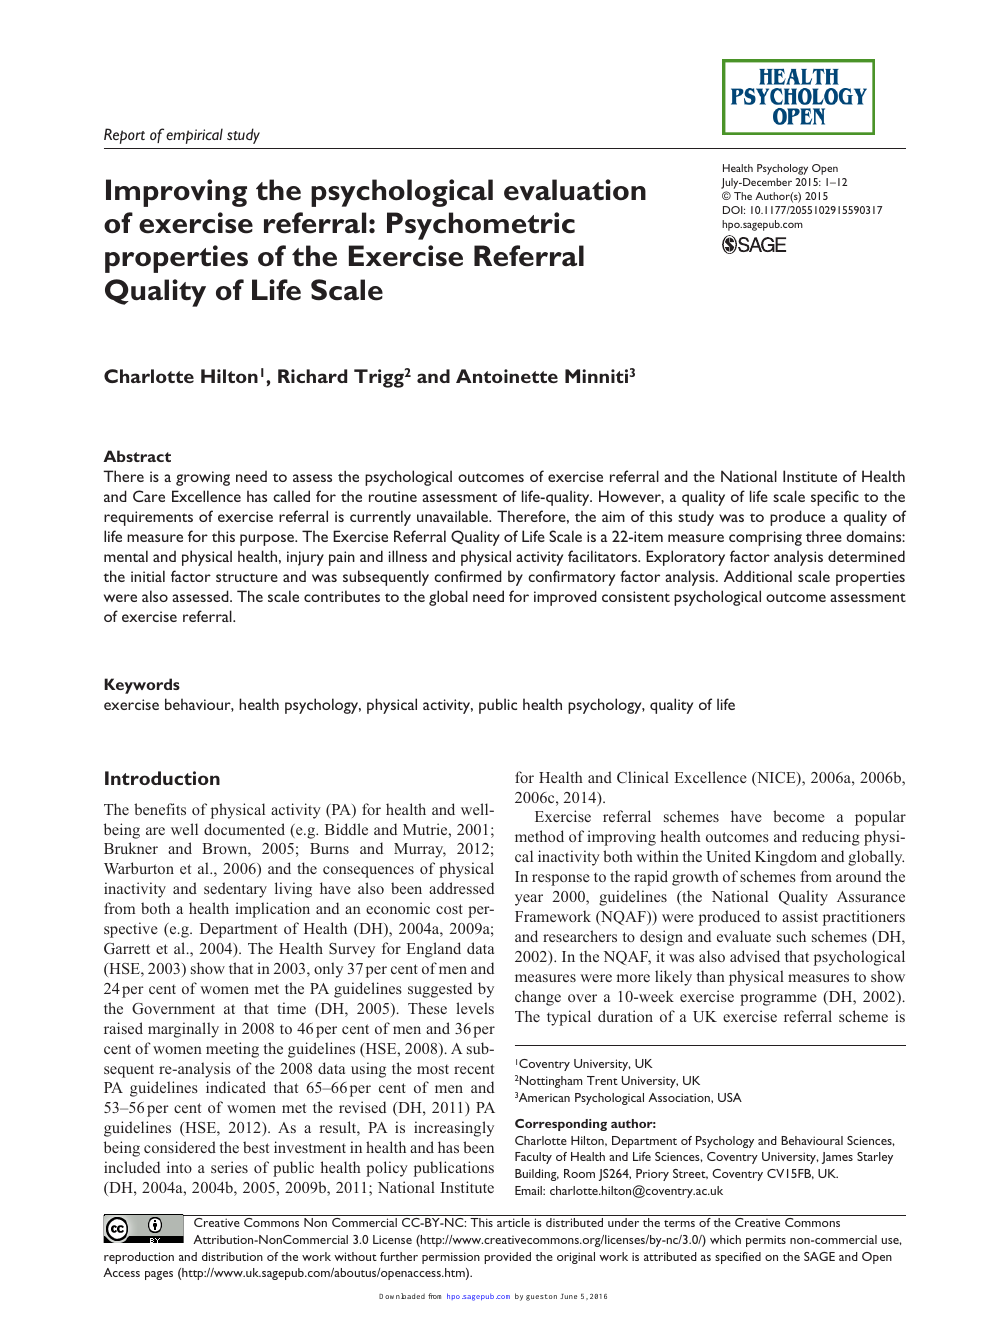 Improving the psychological evaluation of exercise referral